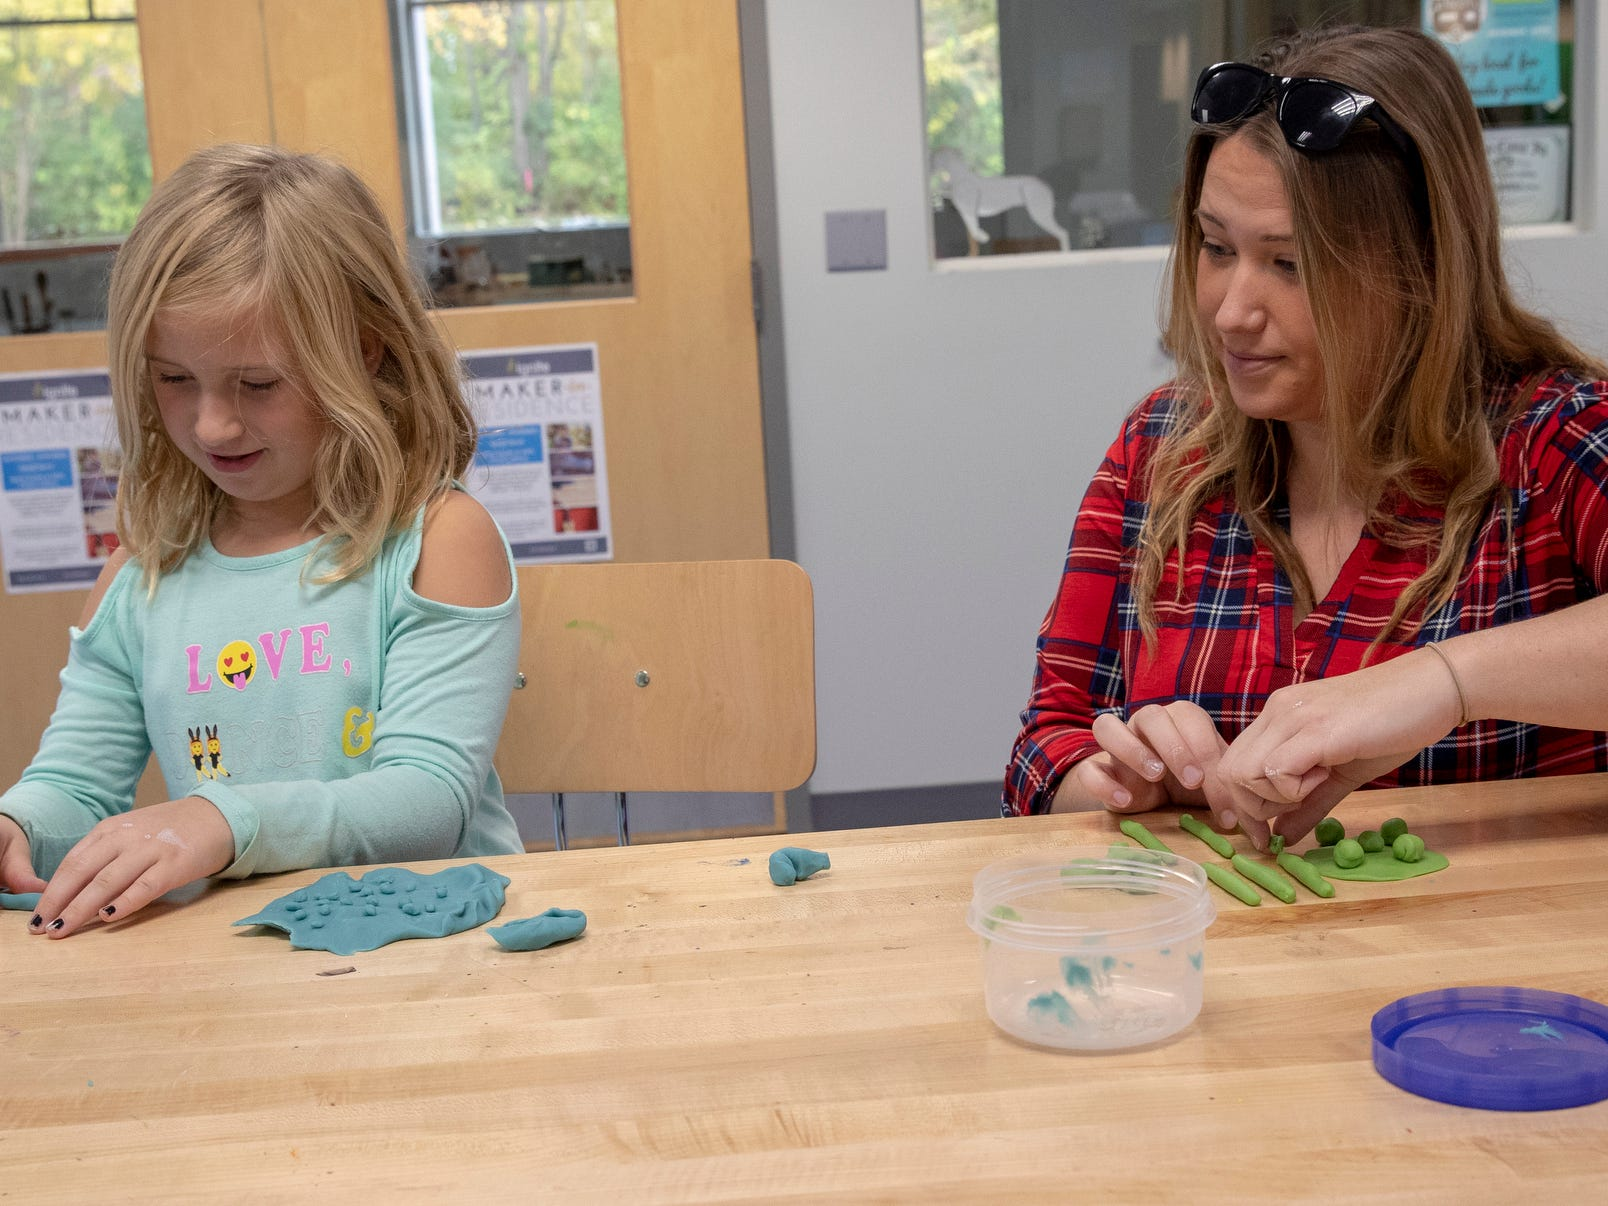 Annalise Baker, 6, Fishers, works with some playdough with her mother Lisa Schuiteboer at Ignite, a new shared work space for artists and creative people at Hamilton East Public Library in Fishers, Sunday, Nov. 4, 2018. The facility is open during regular open hours and has spaces for pottery, videography, 3D printing, and a host of other activities.